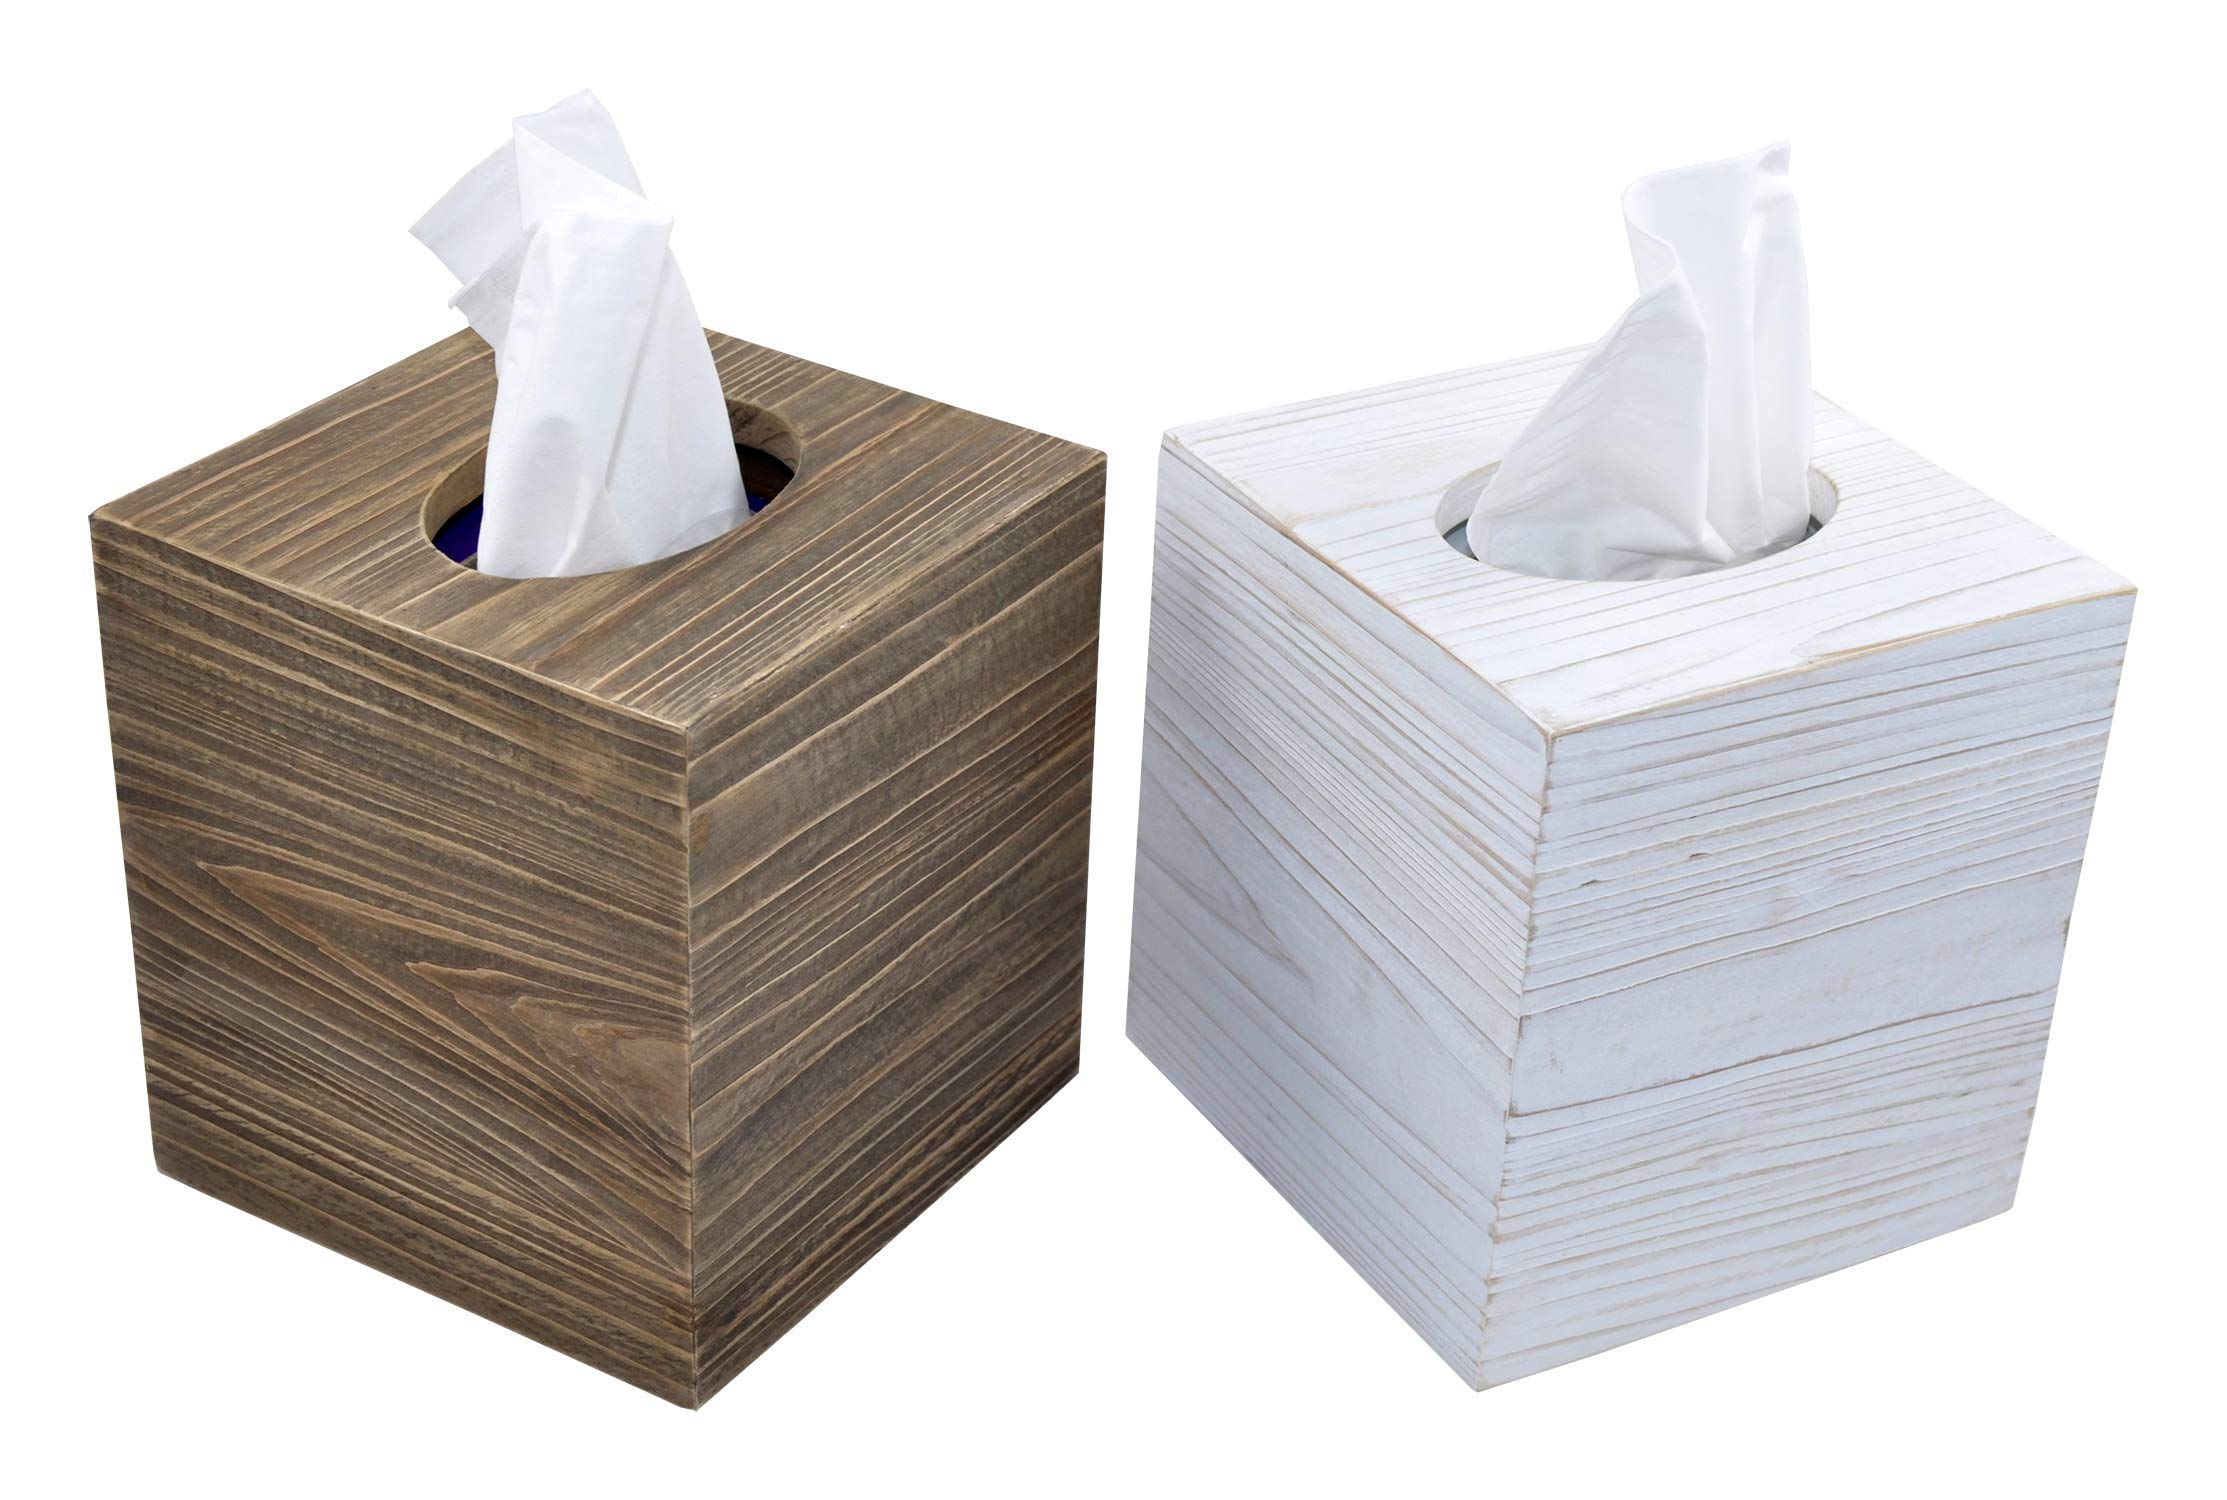 Spiretro Set of 2 Square Tissue Box Cover, Rustic Reclaimed Wood Facial Paper Holder for Bathroom, Vanity Countertops, Dressers, Night Stands, Desks, Tables – Farmhouse Classic Grey & Whitewash